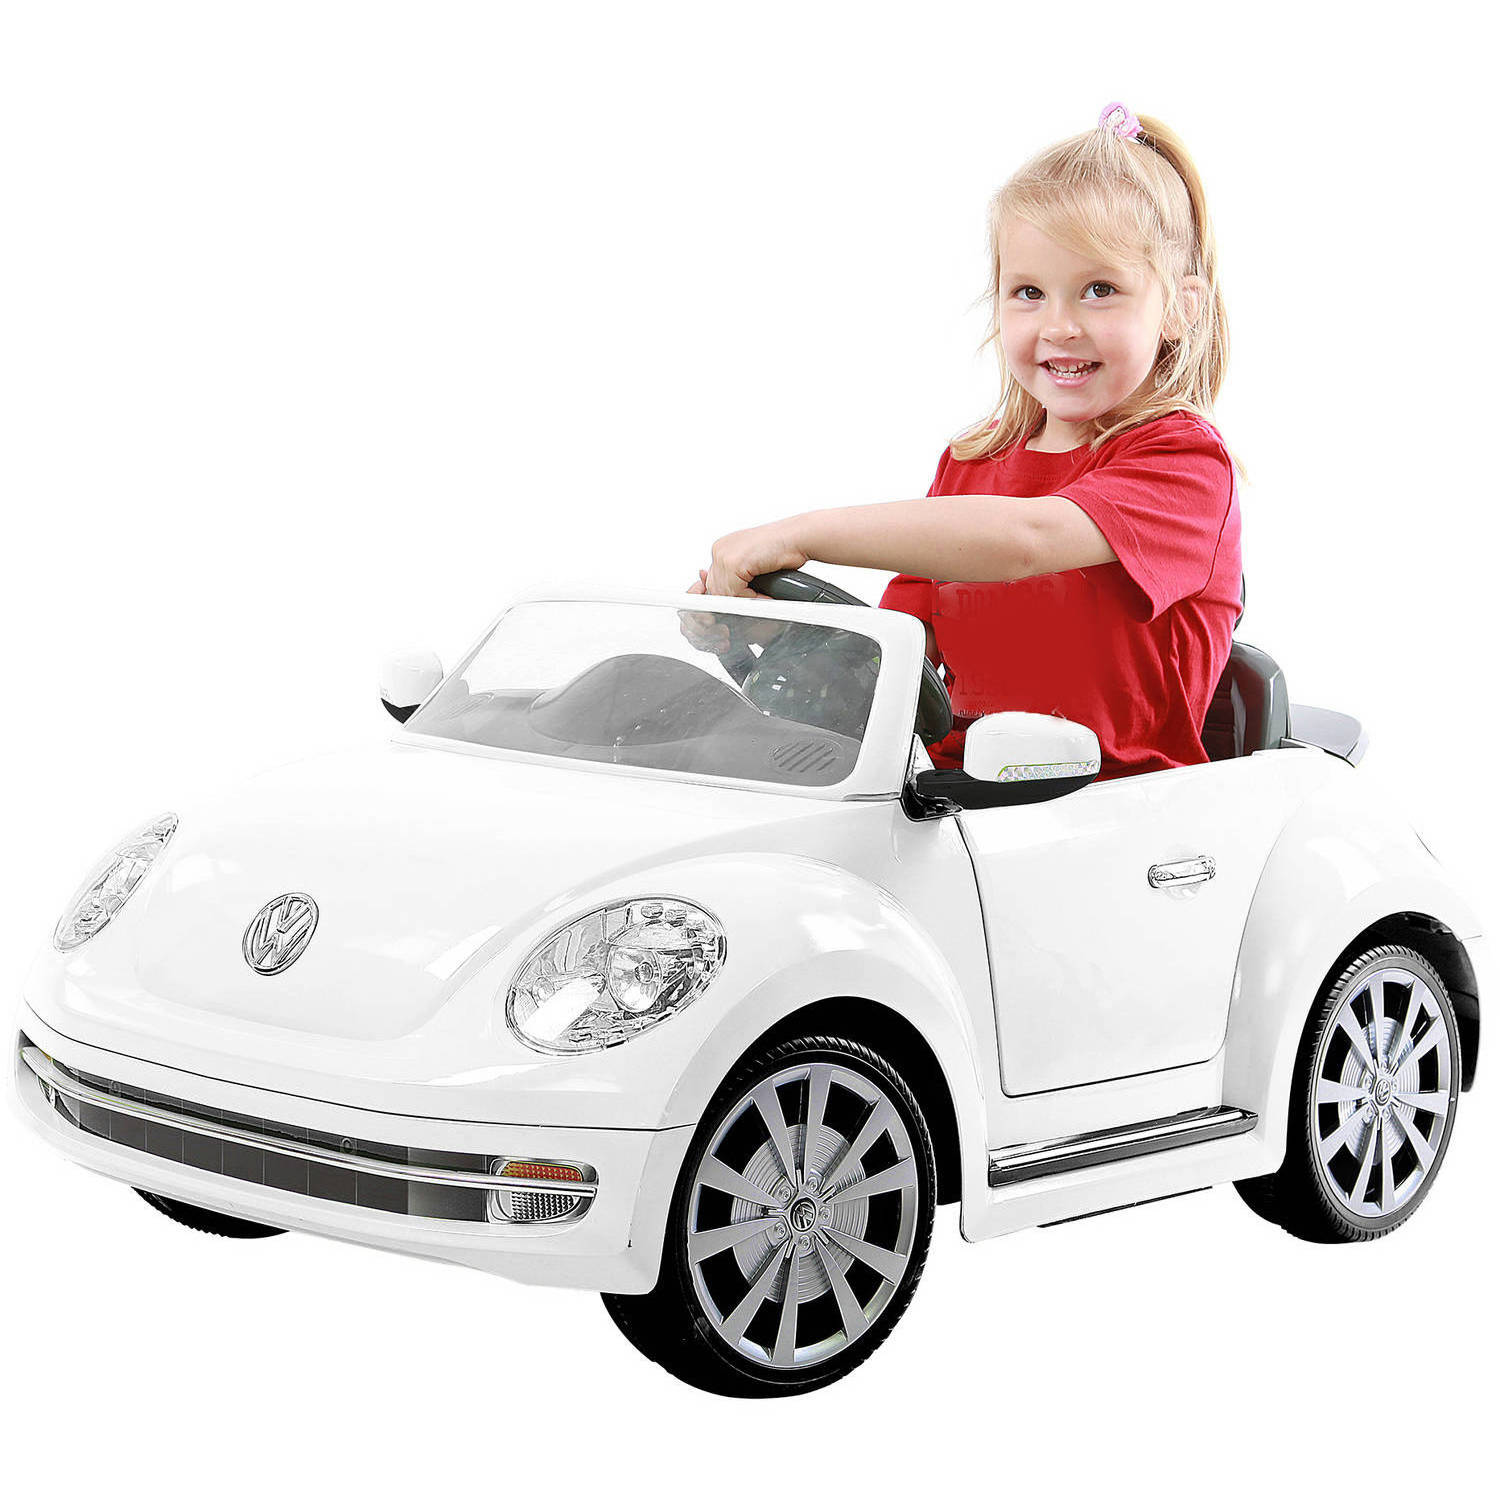 Rollplay VW Beetle 6-Volt Battery-Powered Ride-On